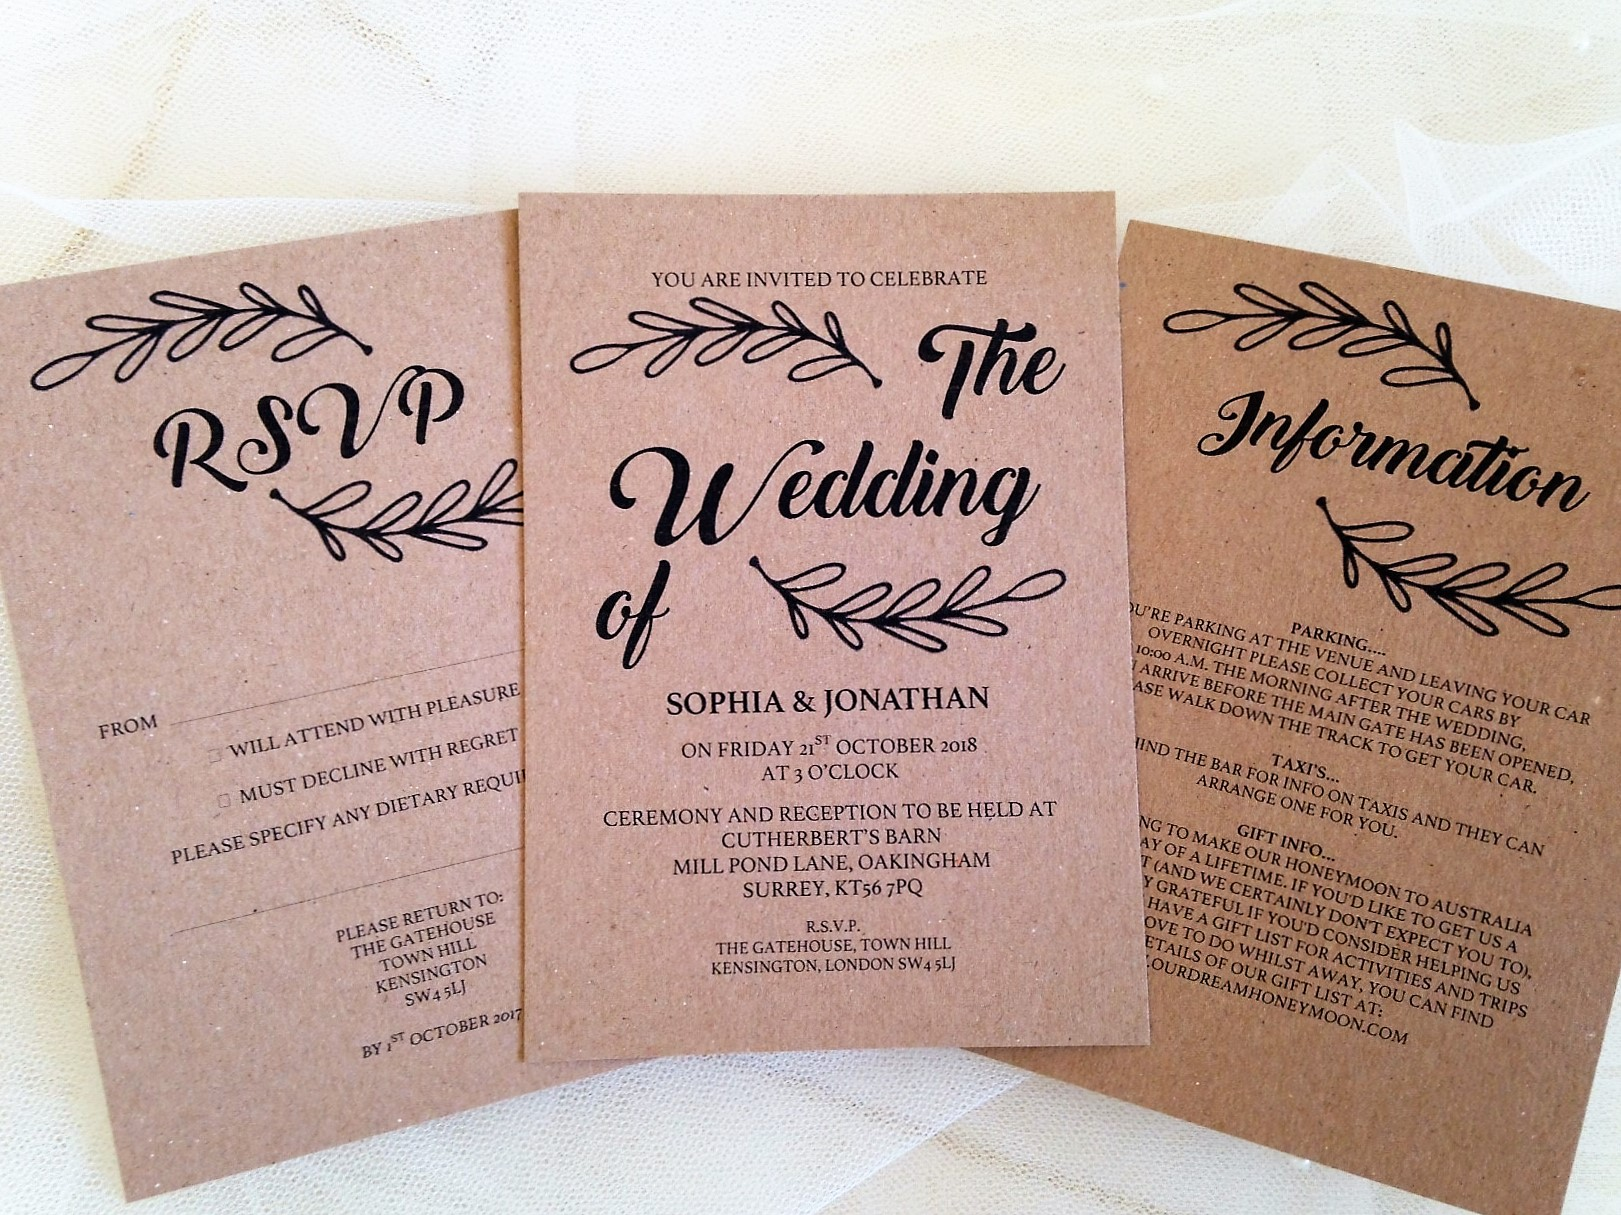 How Do You Make Your Own Wedding Invitations